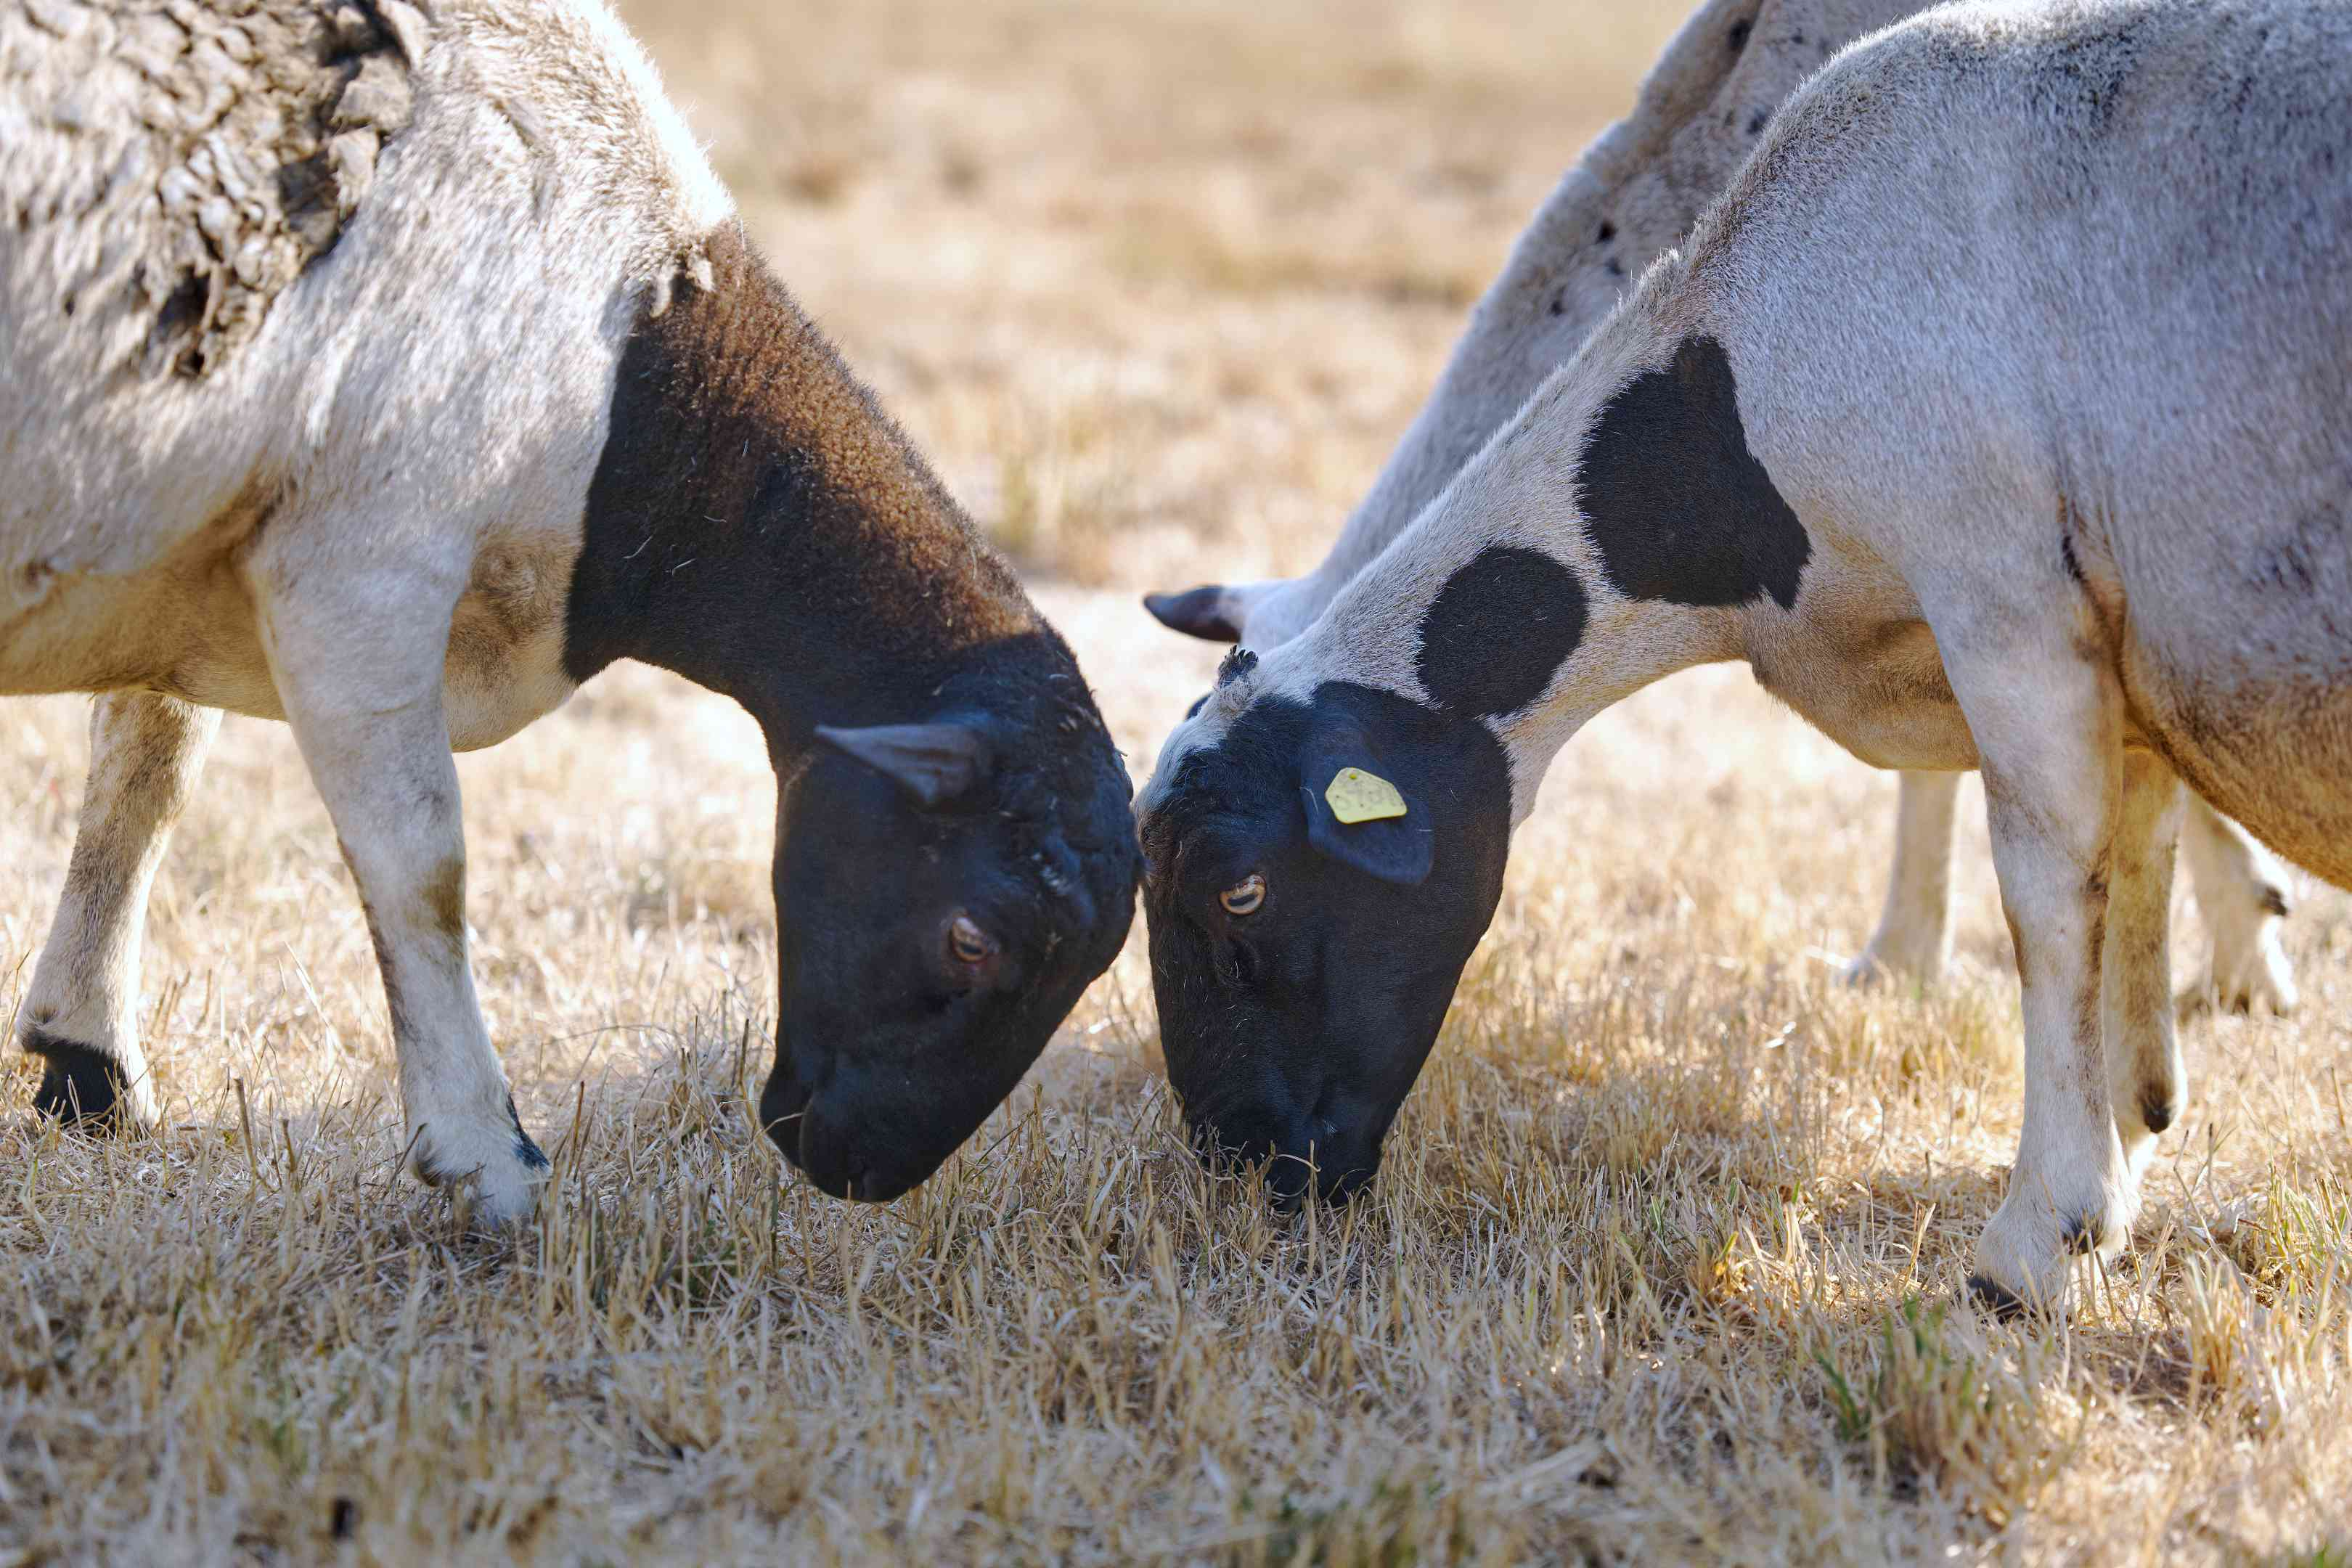 three sheep put heads down in the dried grass grazing for food